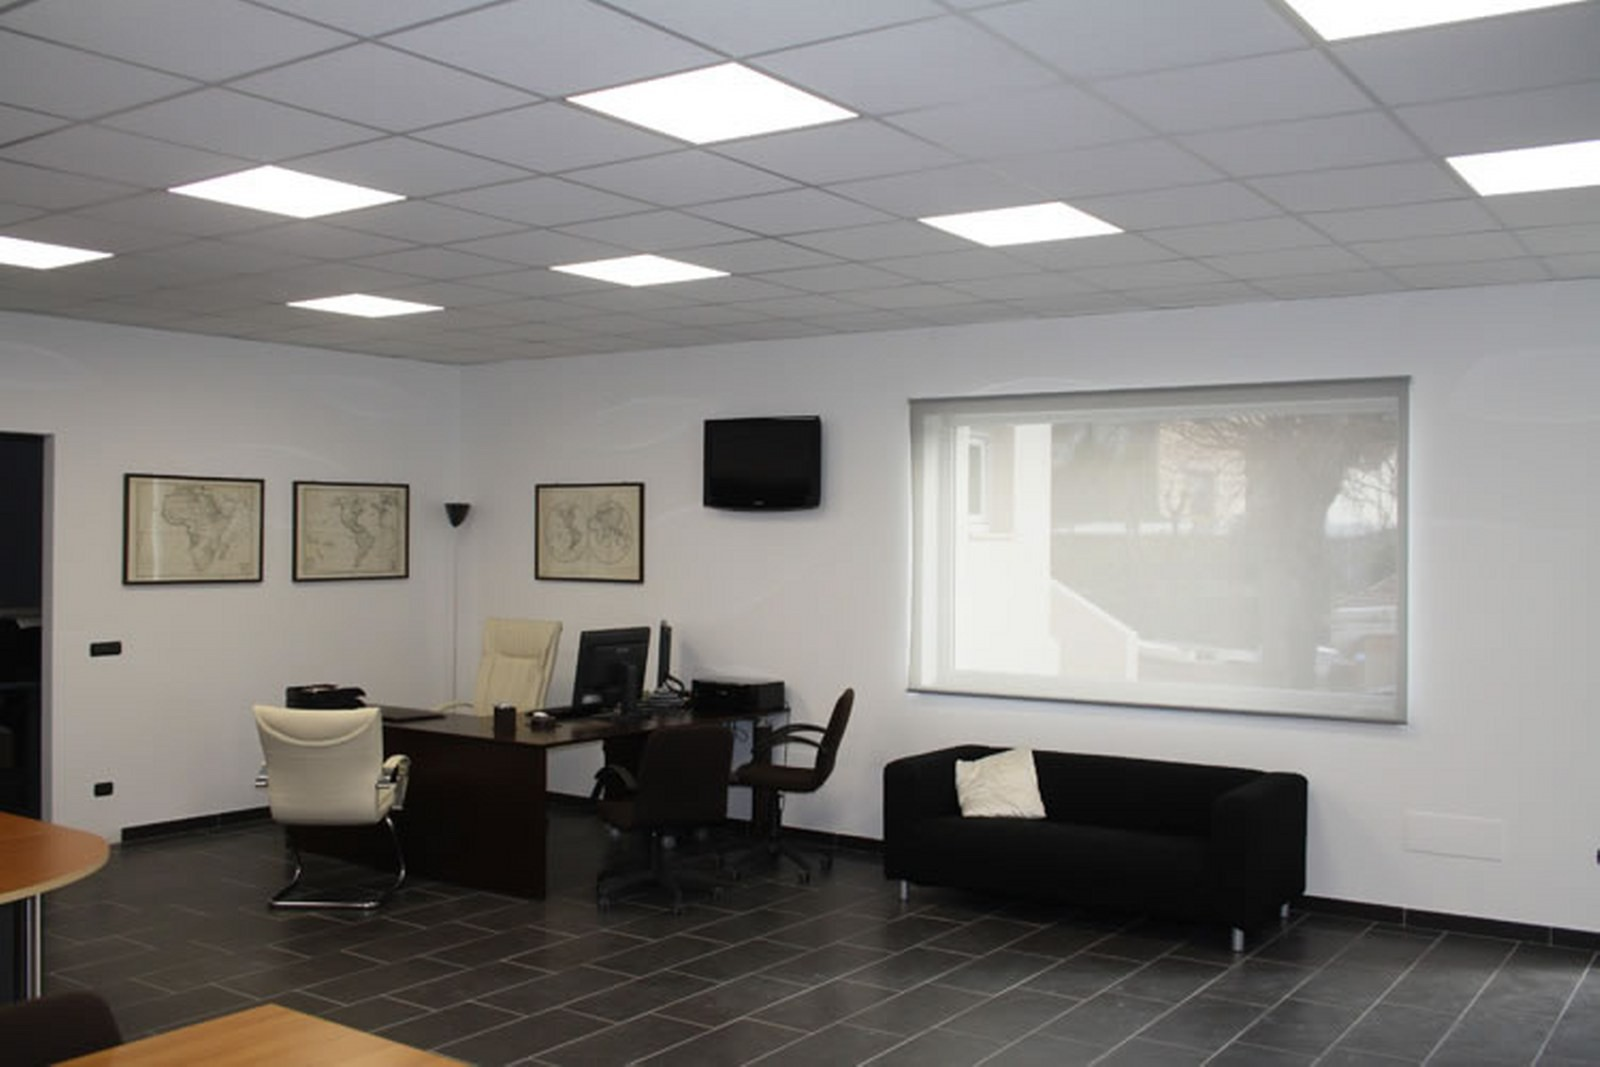 Plafoniere Da Controsoffitto A Led : Panel m bordobianco pannelli led pannello